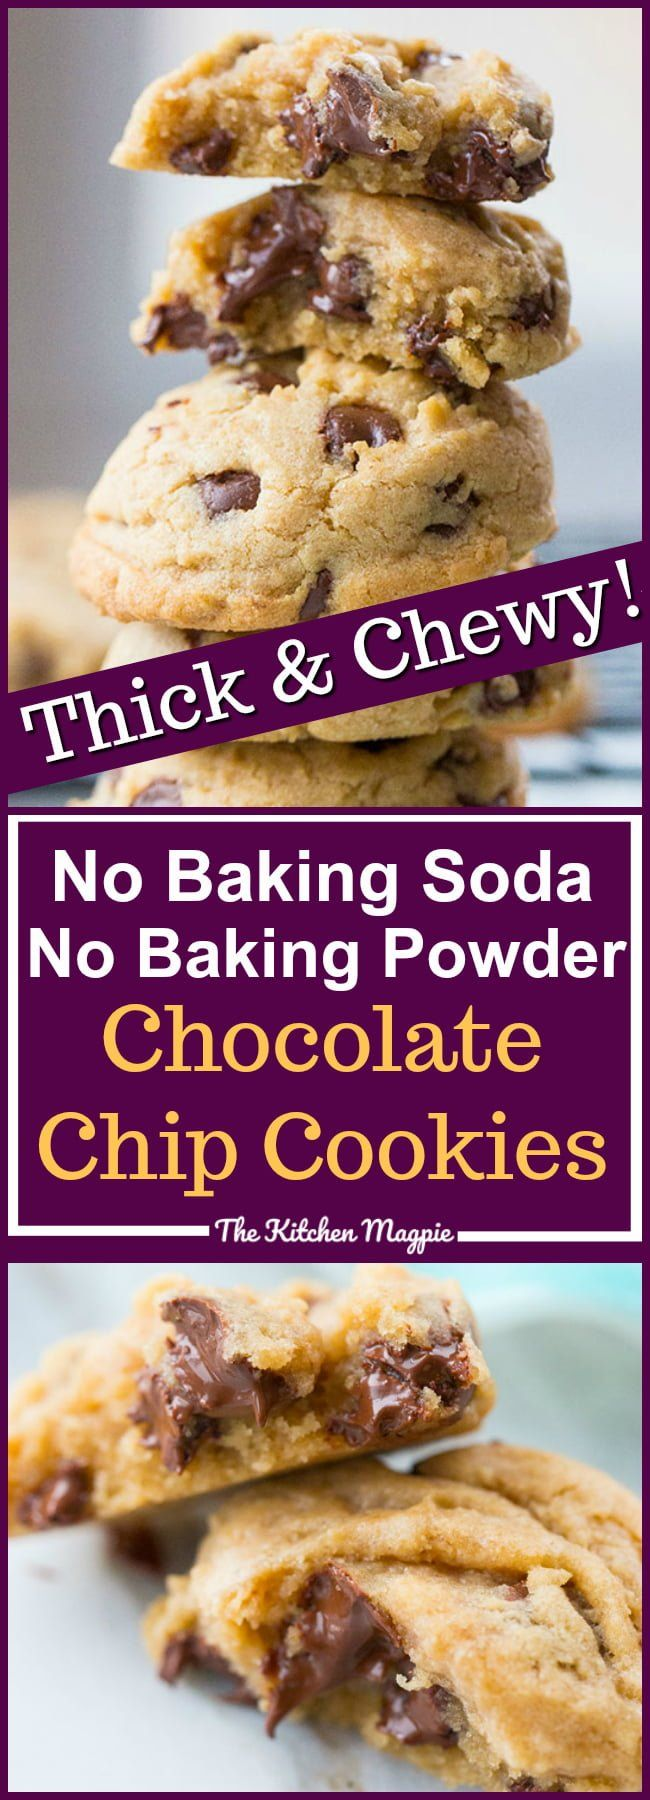 Chocolate Chip Cookie Recipe Without Baking Soda or Baking Powder — The Kitchen Magpie